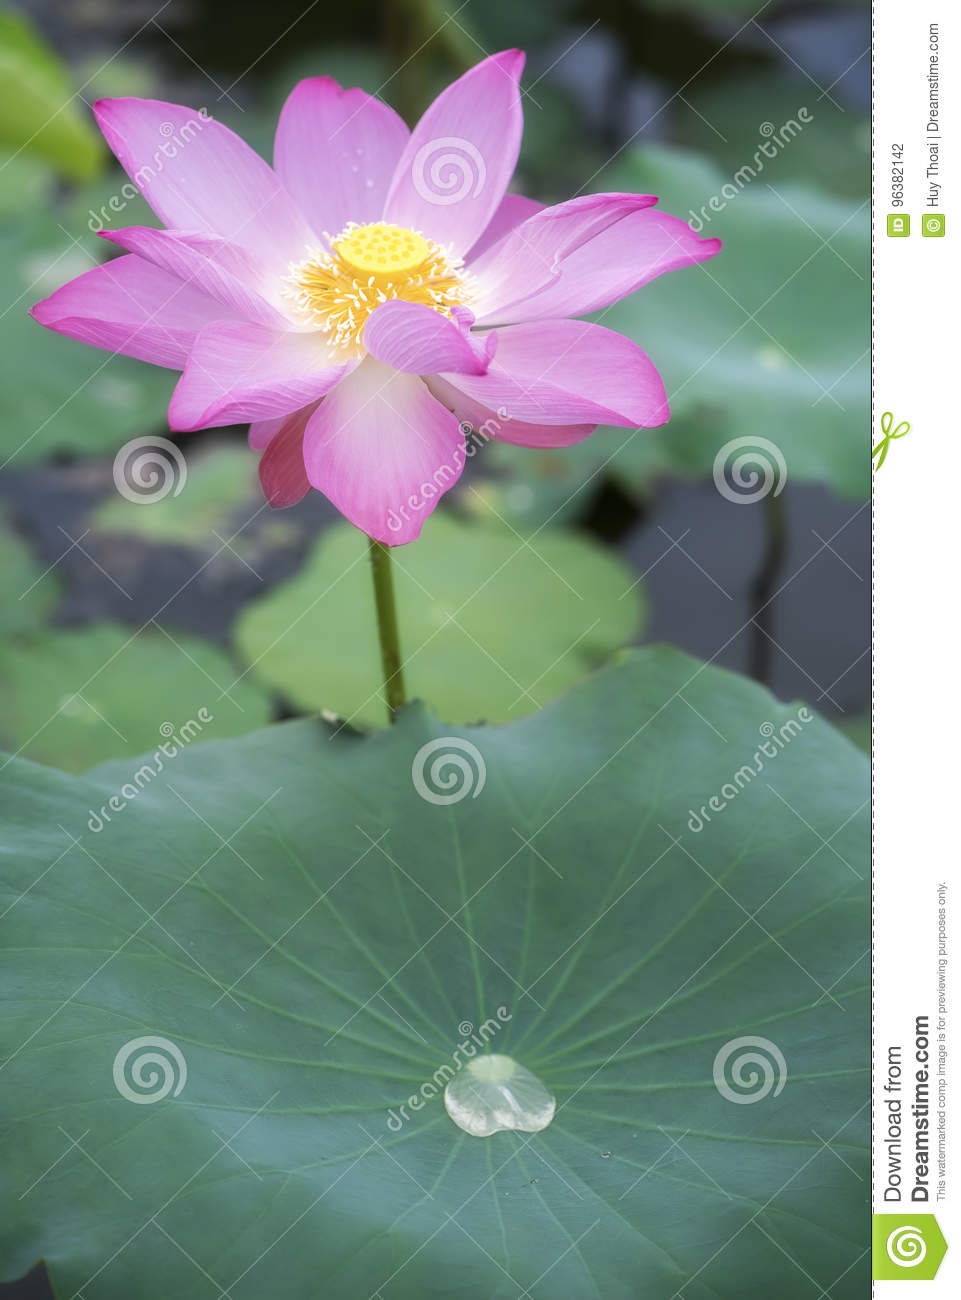 Pink Lotus Blossoming In The Pond Stock Photo Image Of Color Head